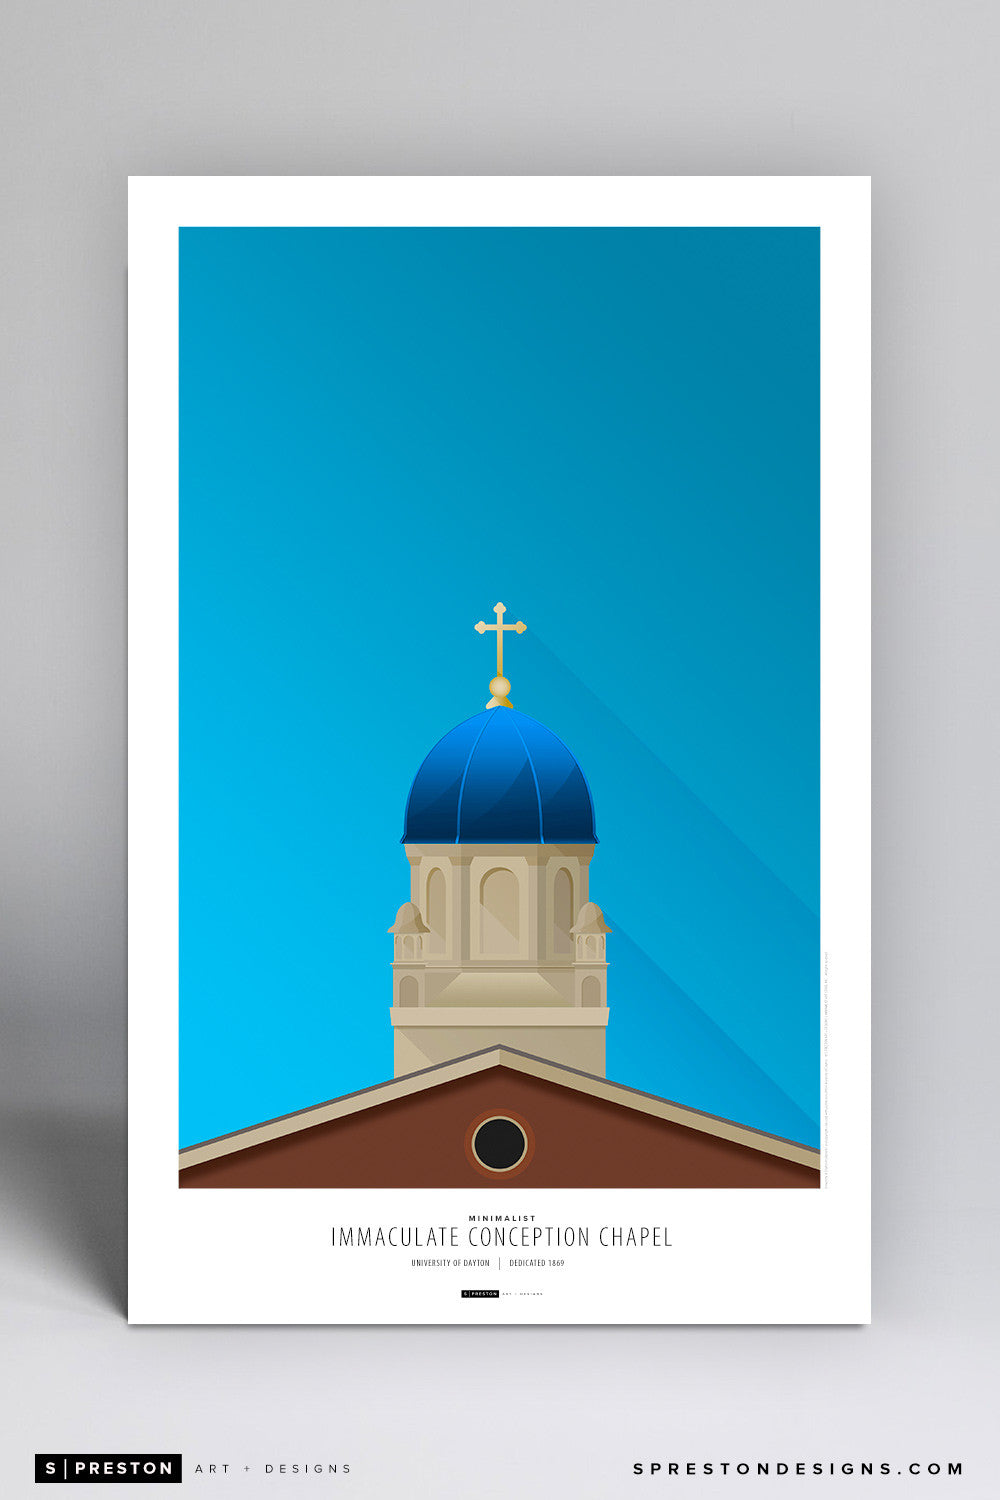 Minimalist Immaculate Conception Chapel Poster Print - University of Dayton - S. Preston Art + Designs